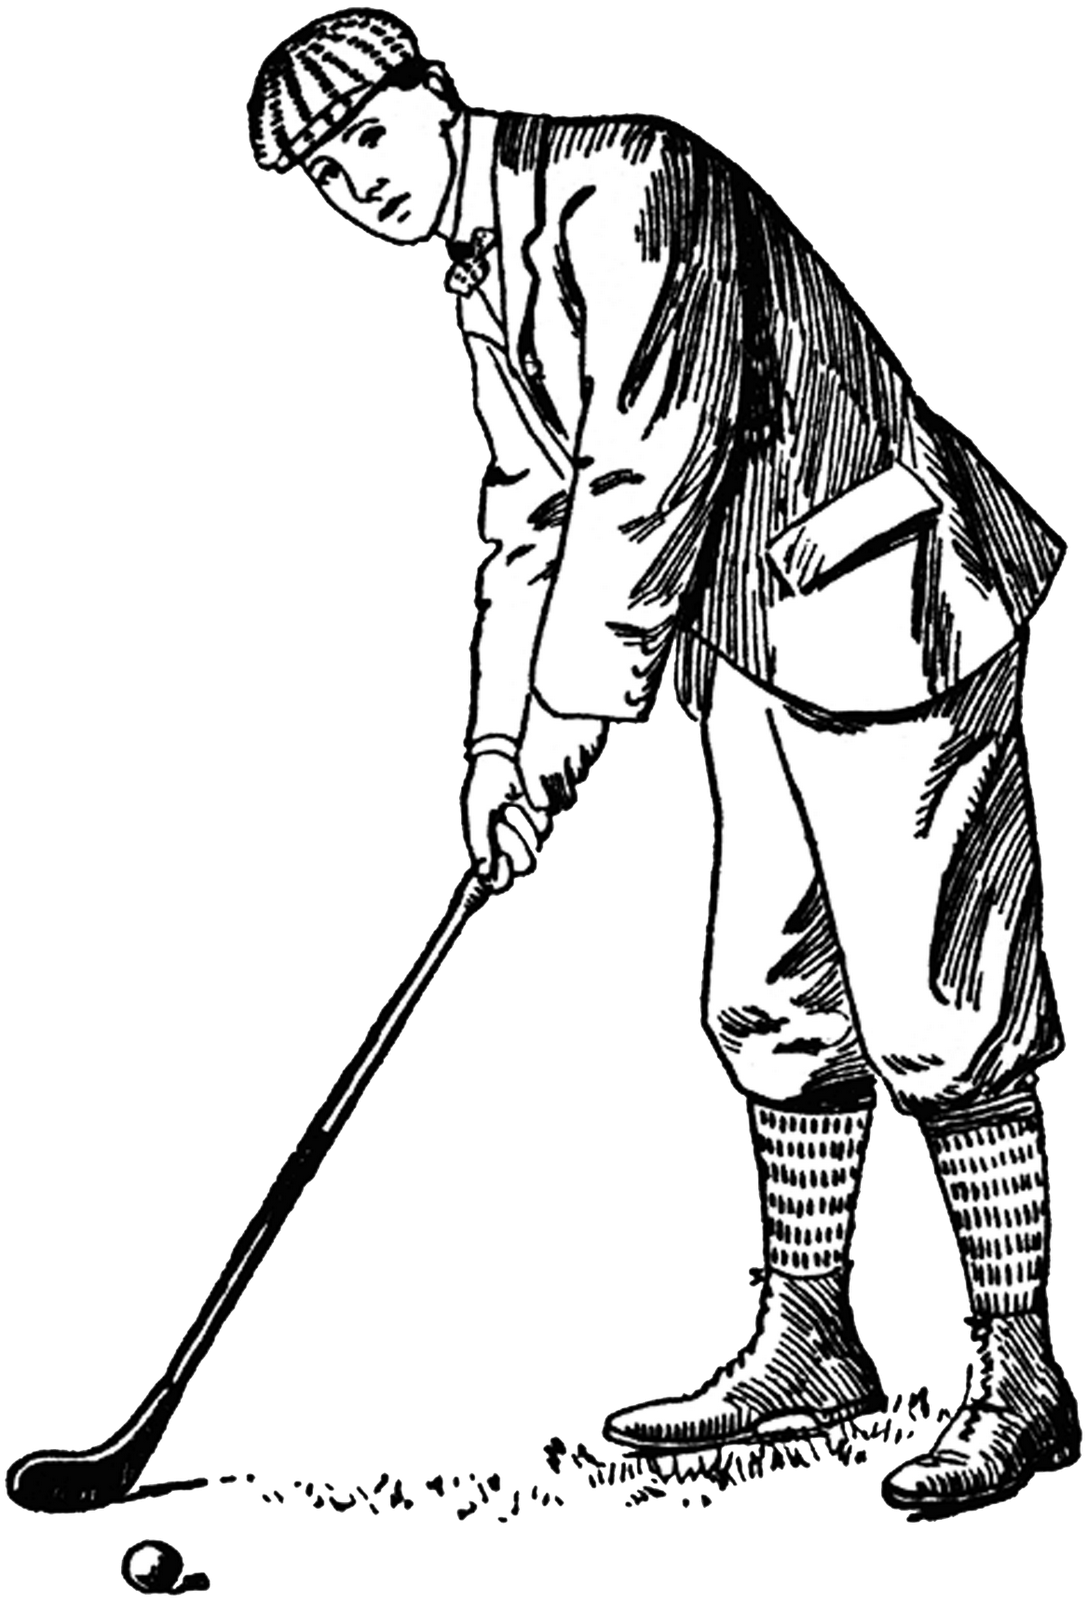 Golfer drawing. Being hit by golf